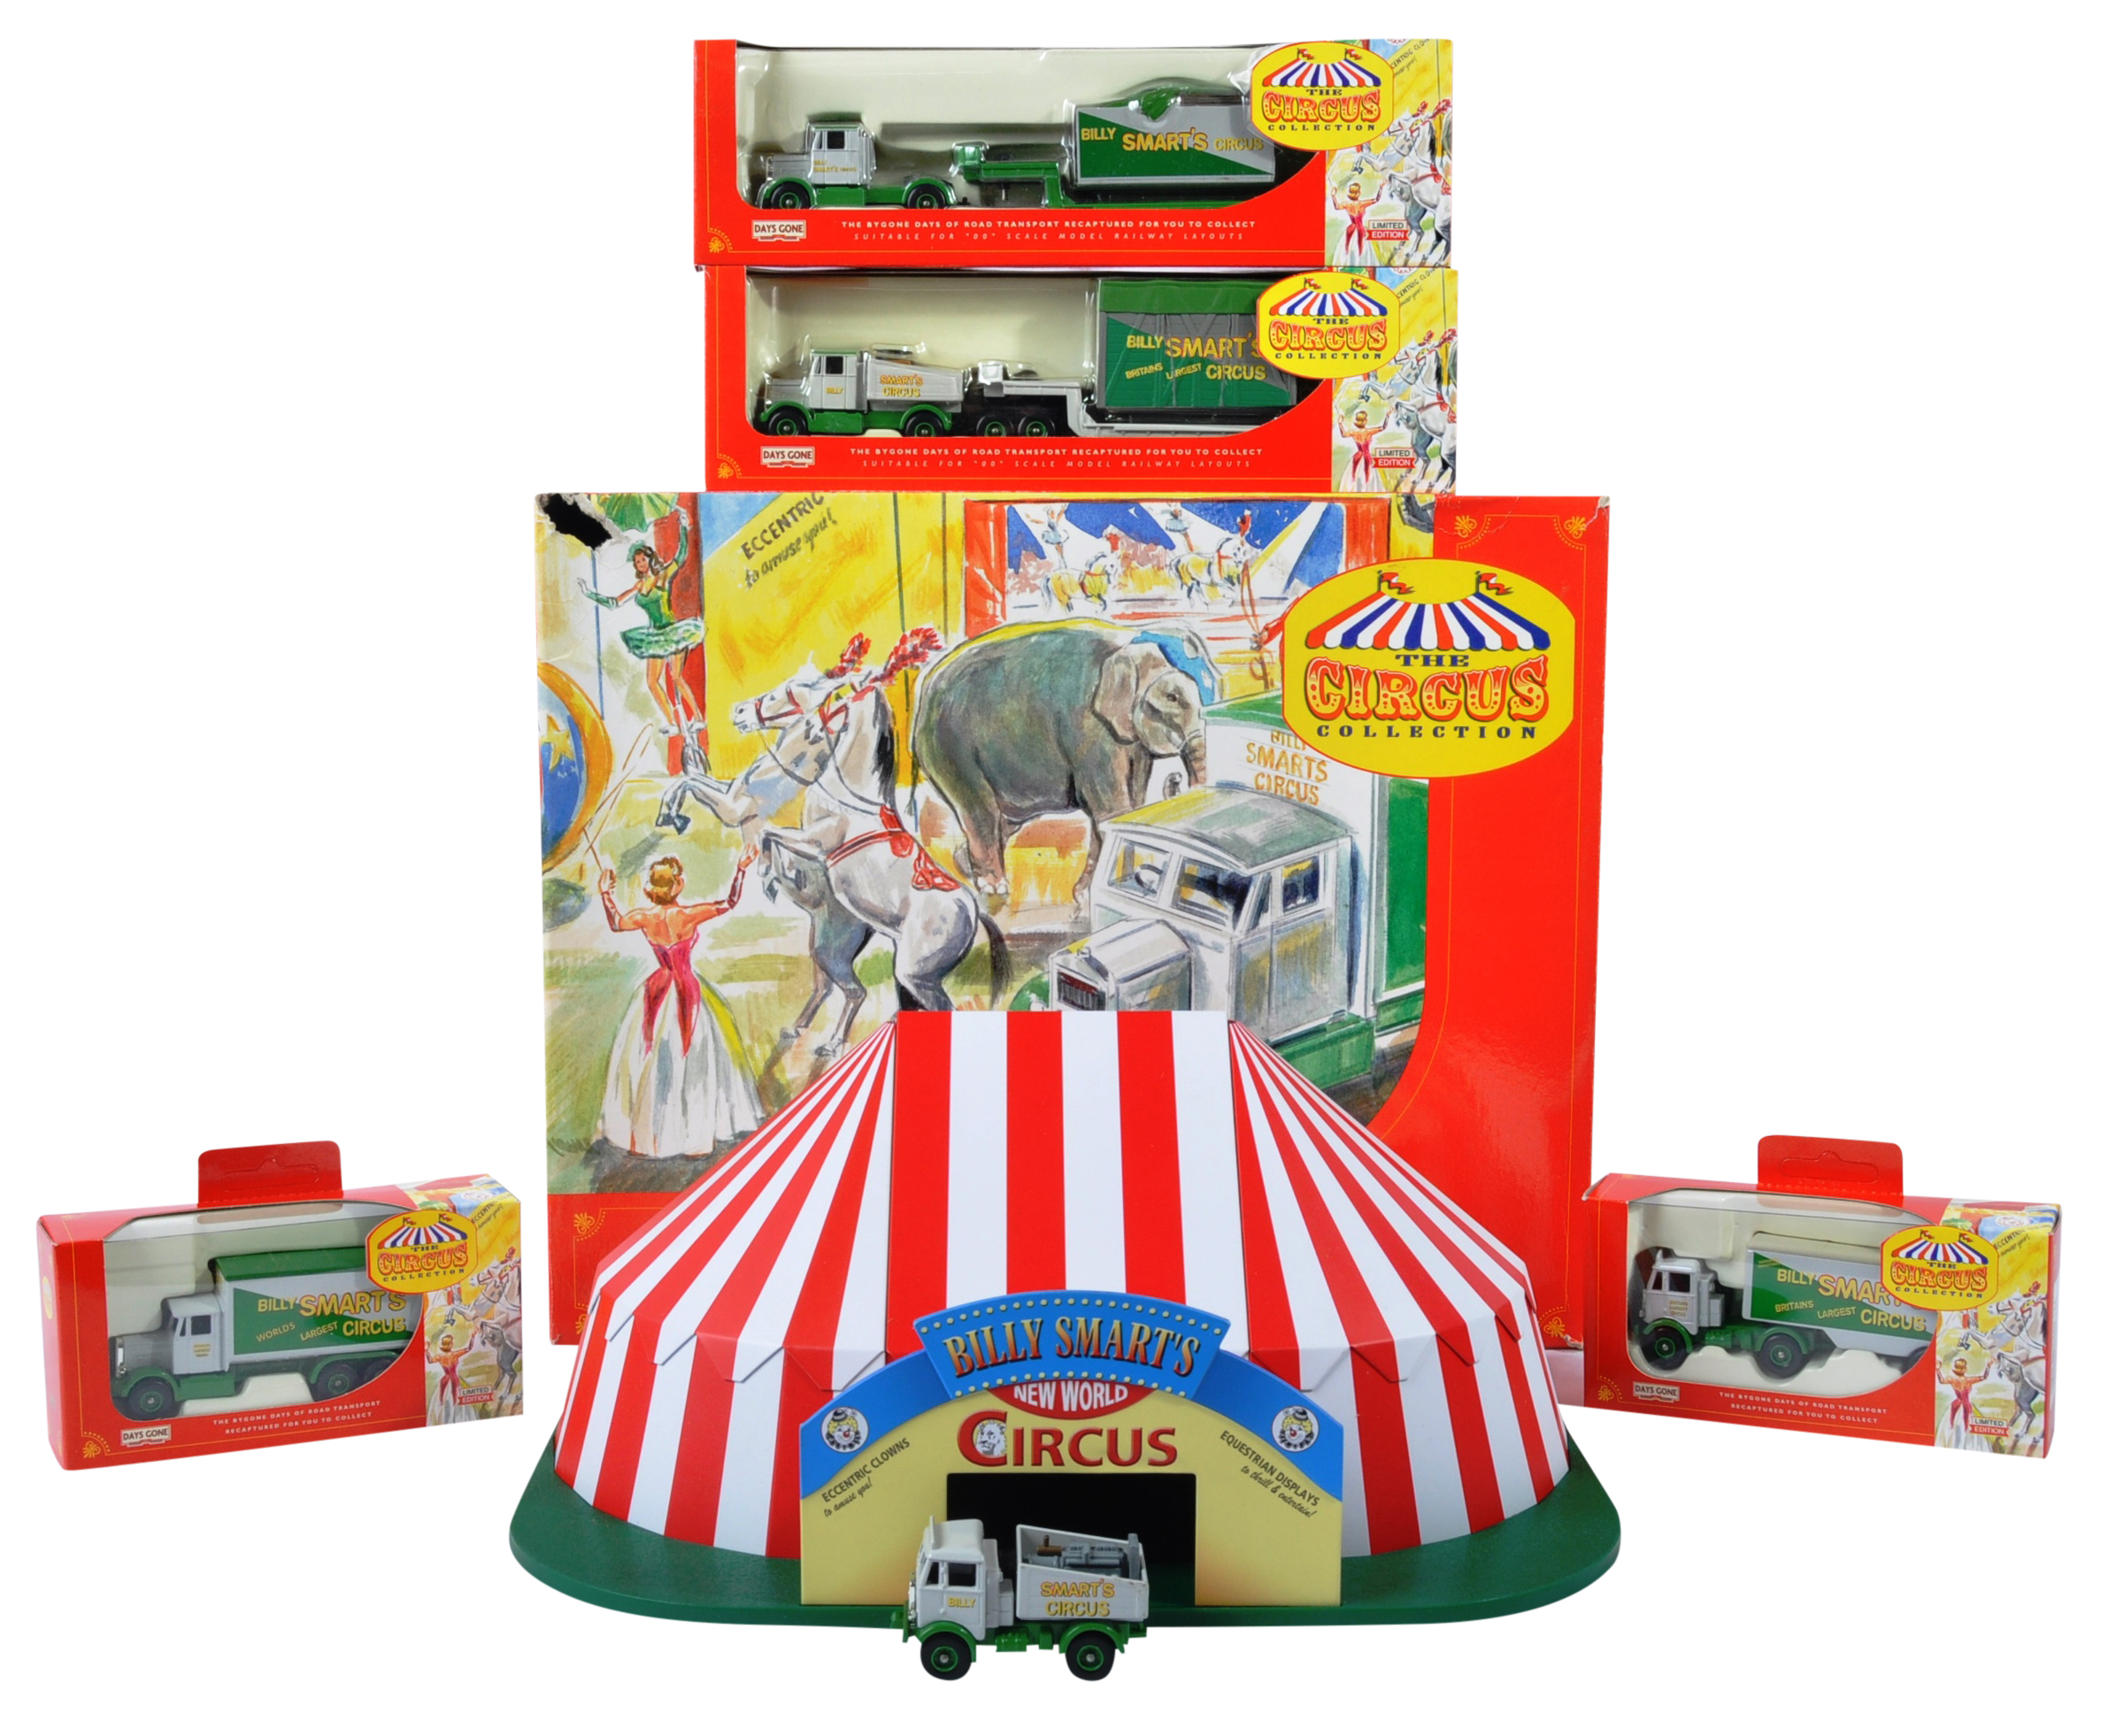 COLLECTION OF LLEDO DAYS GONE BILLY SMARTS CIRCUS DIECAST